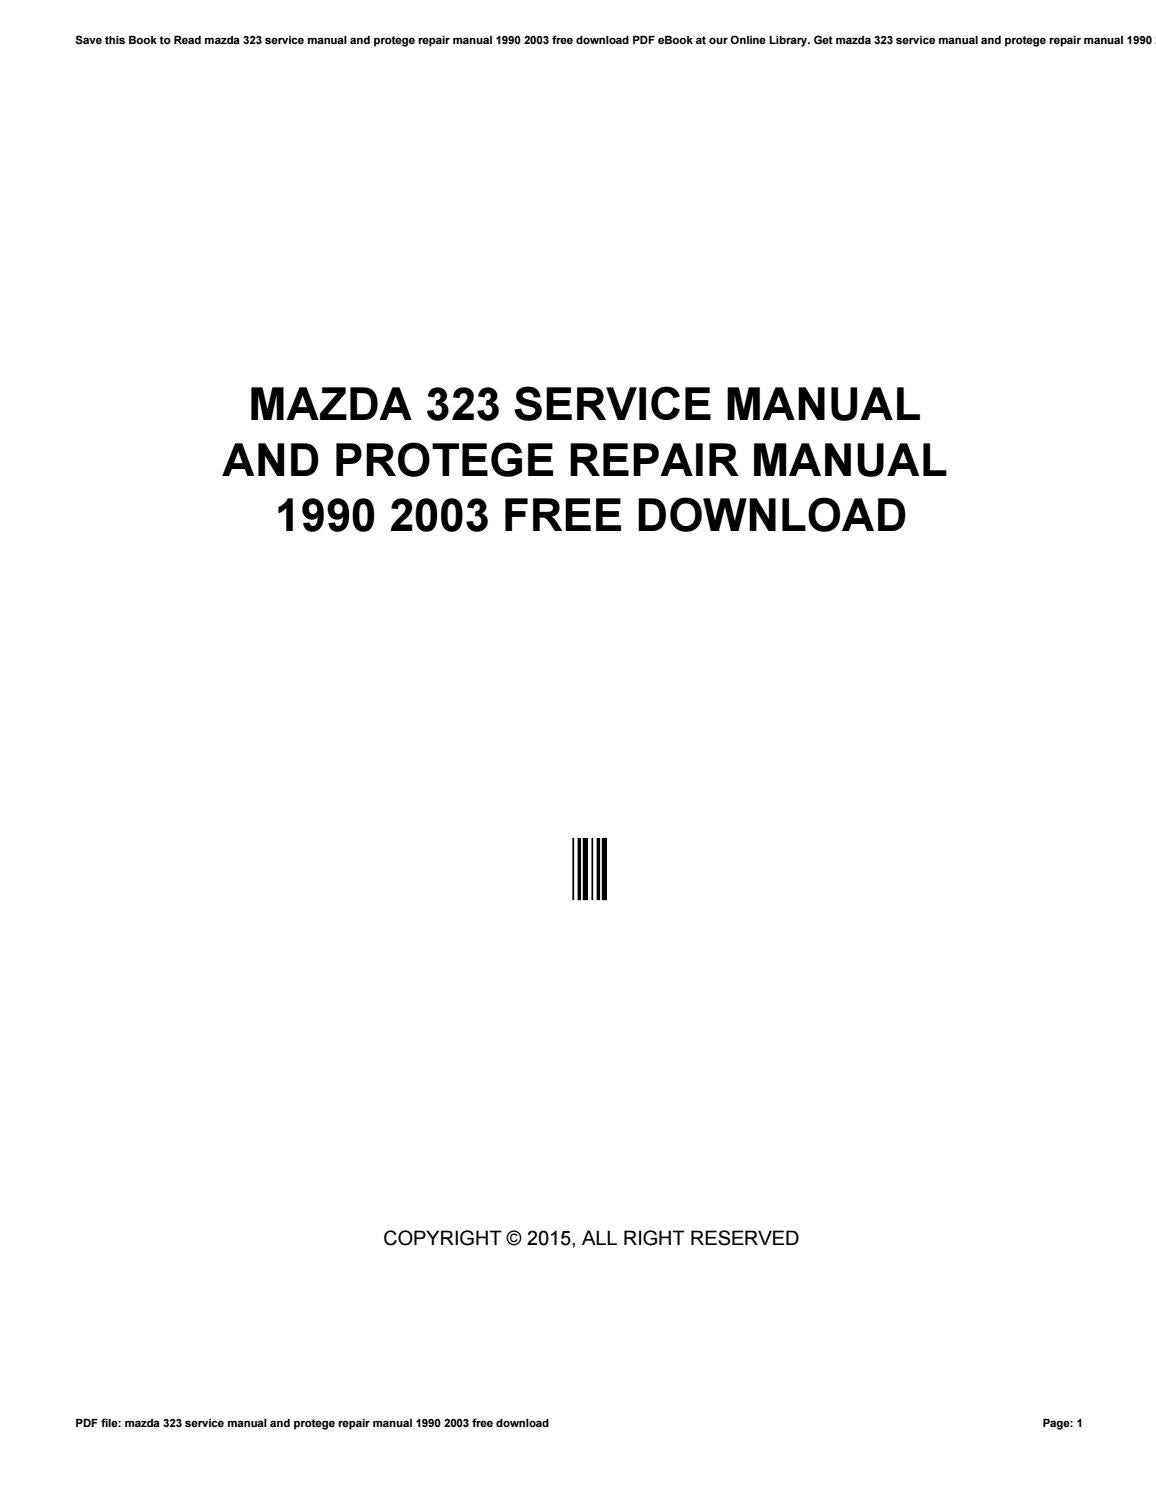 Mazda 323 service manual and protege repair manual 1990 2003 free download  by morriesworld - issuu